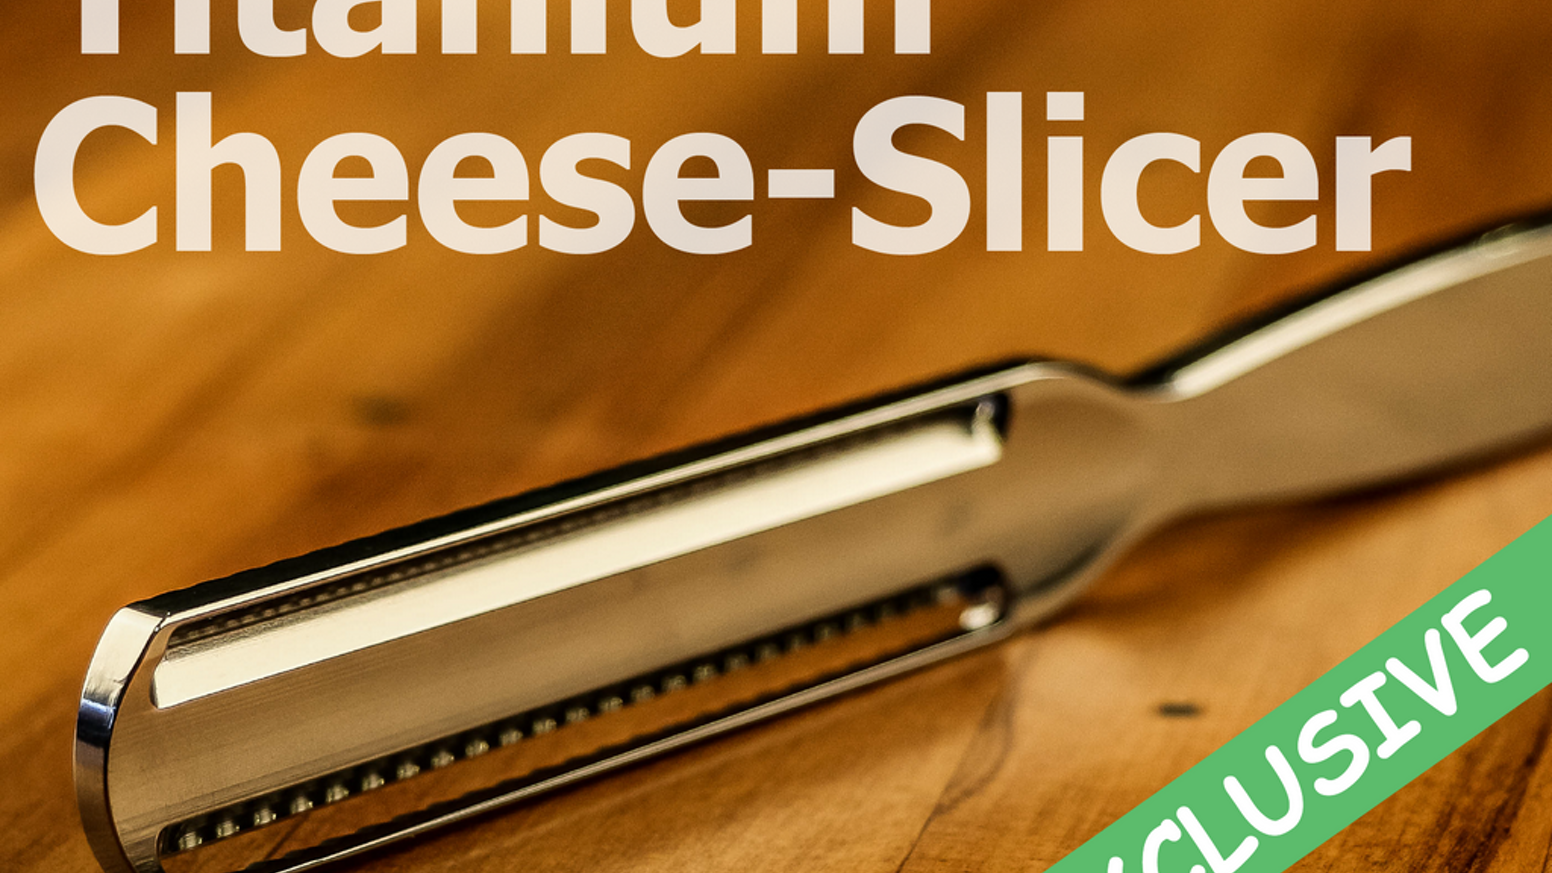 High-Performance Titanium Cheese-Slicer. Precision Engineered And Made To Last A Lifetime. The Ultimate Kitchen Utensil!